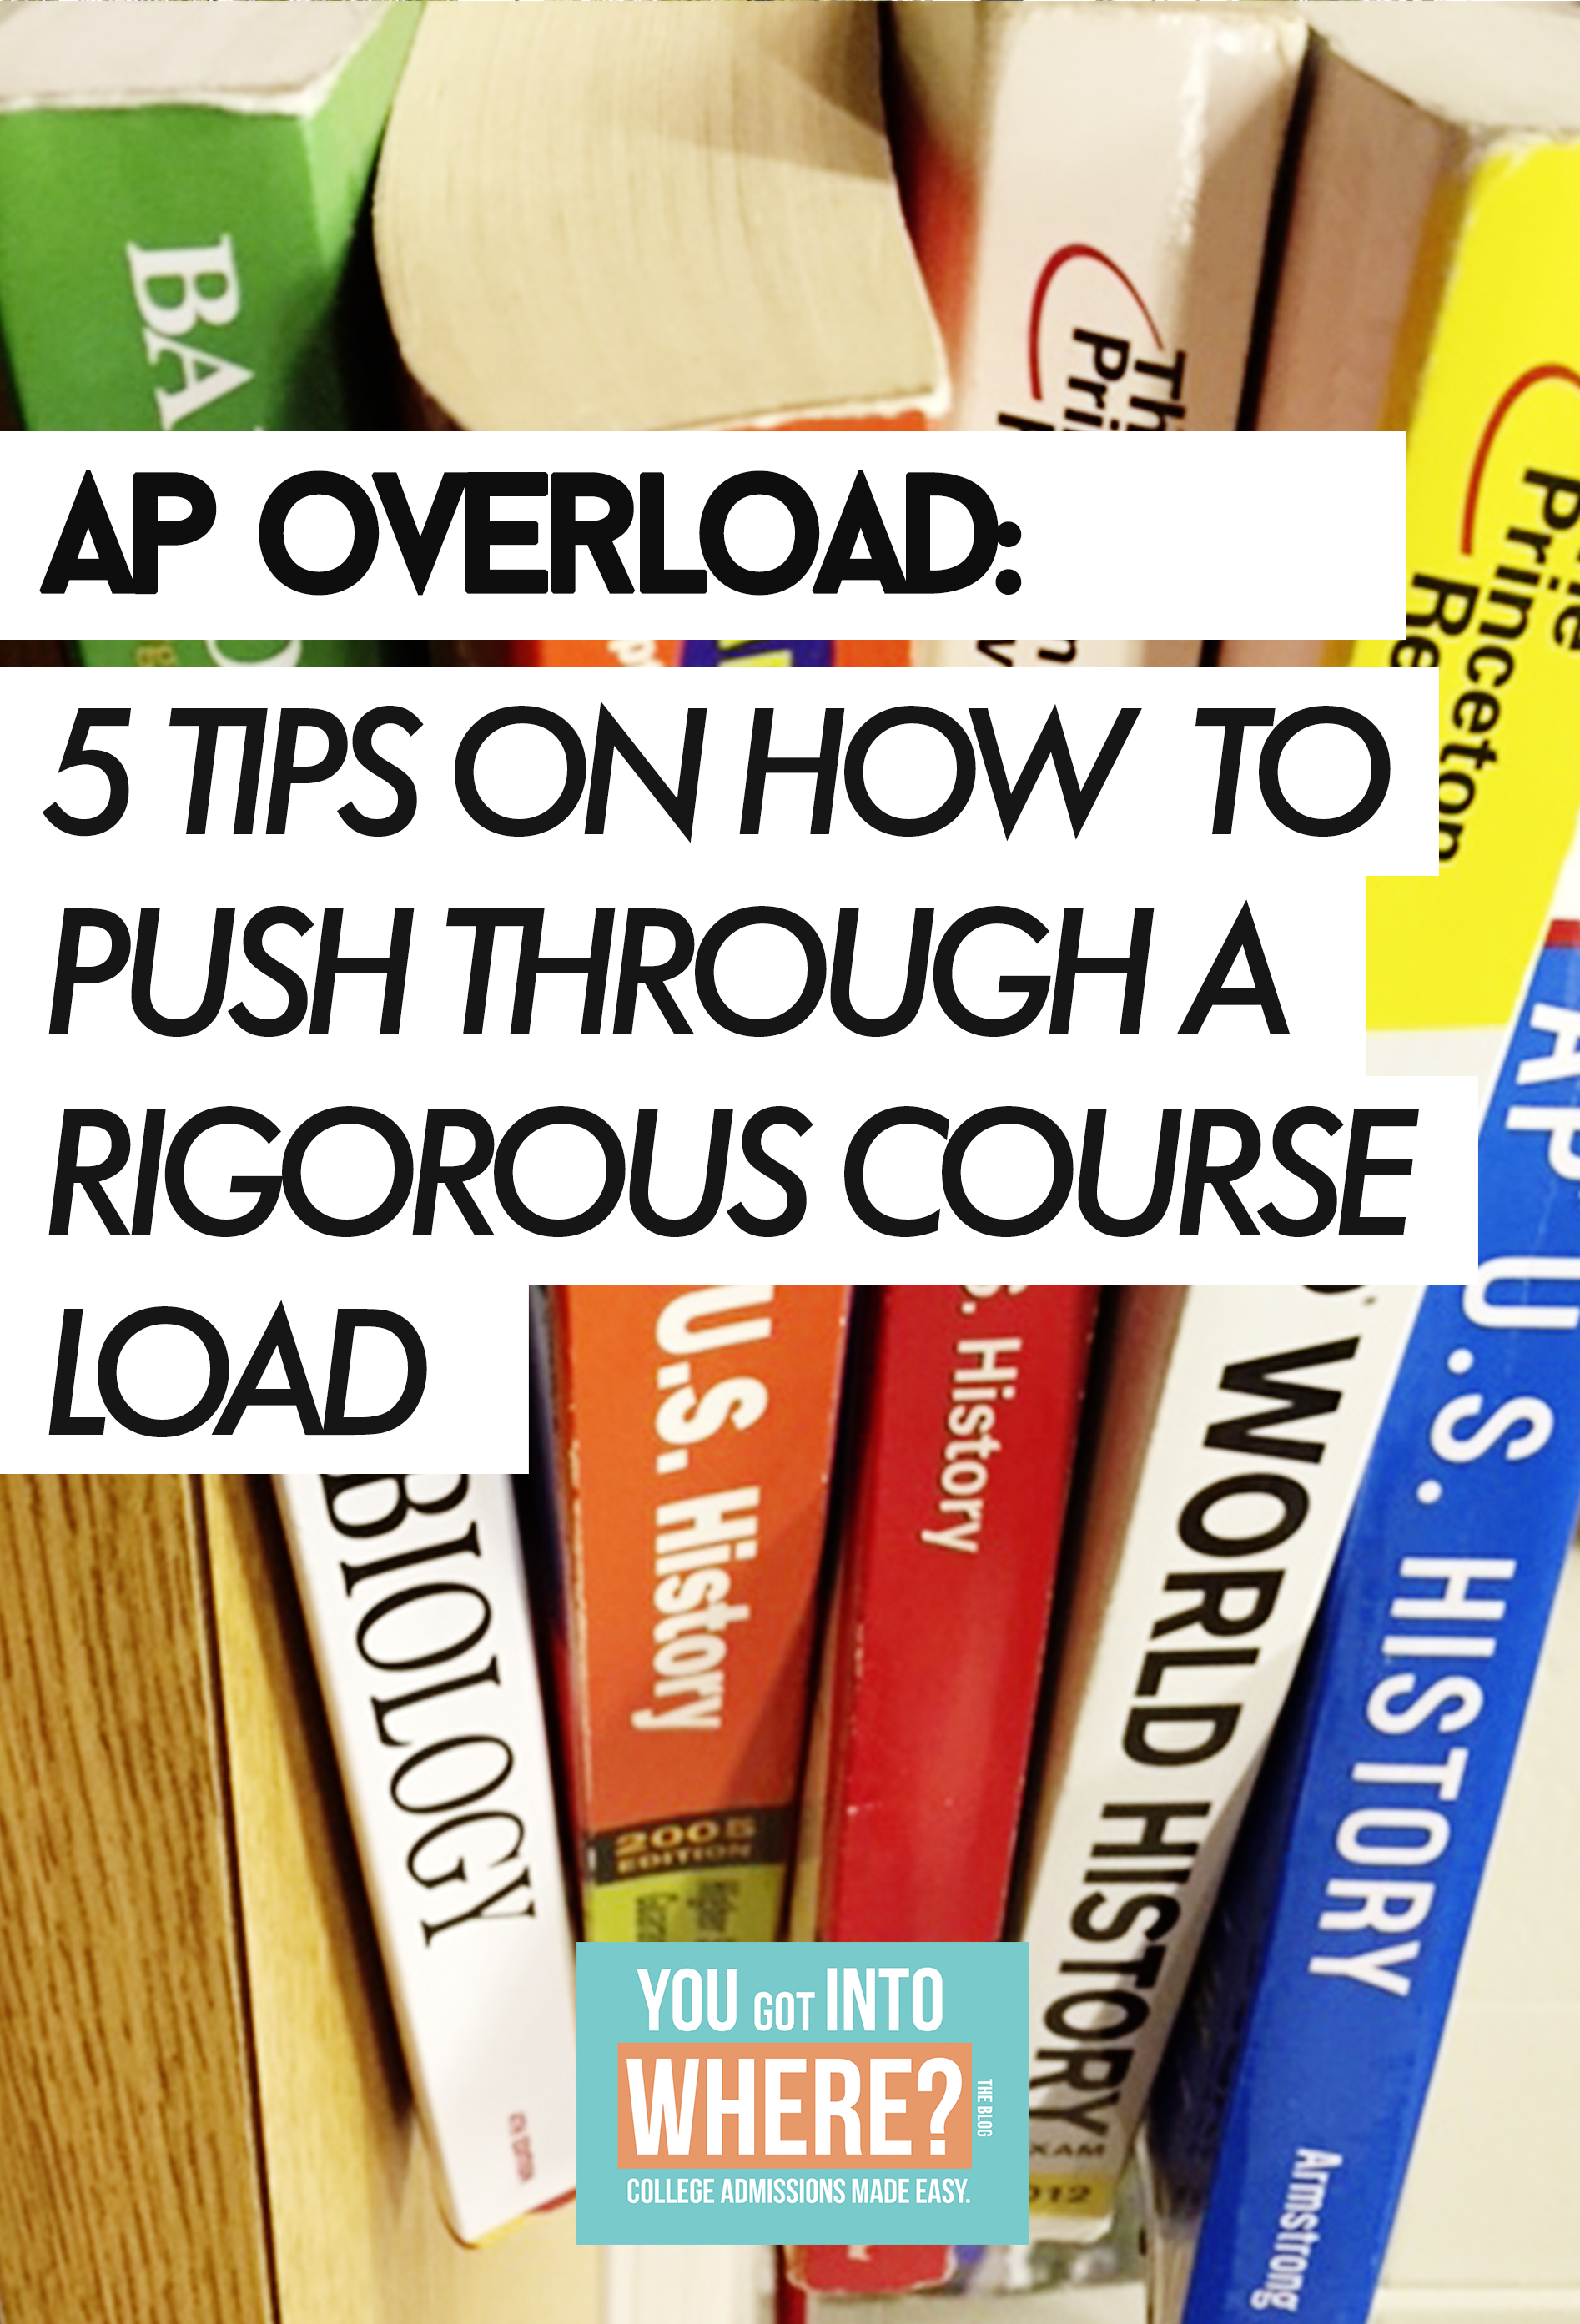 ap-overload-five-tips-to-push-through-a-rigourous-courseload.png